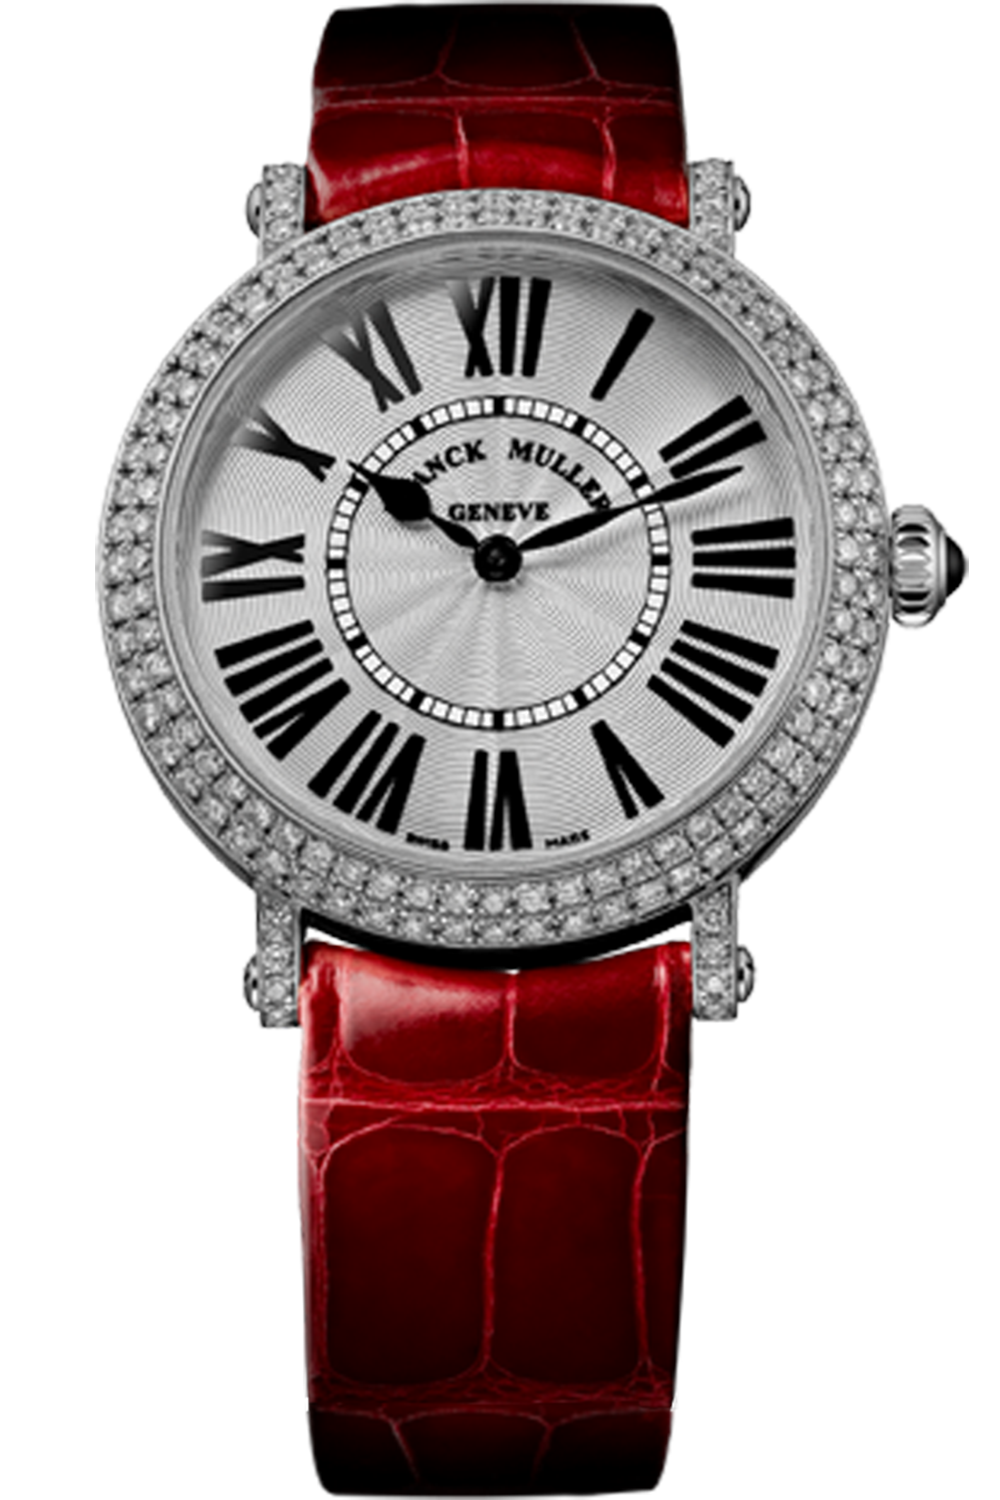 Franck Muller Official Website - Haute